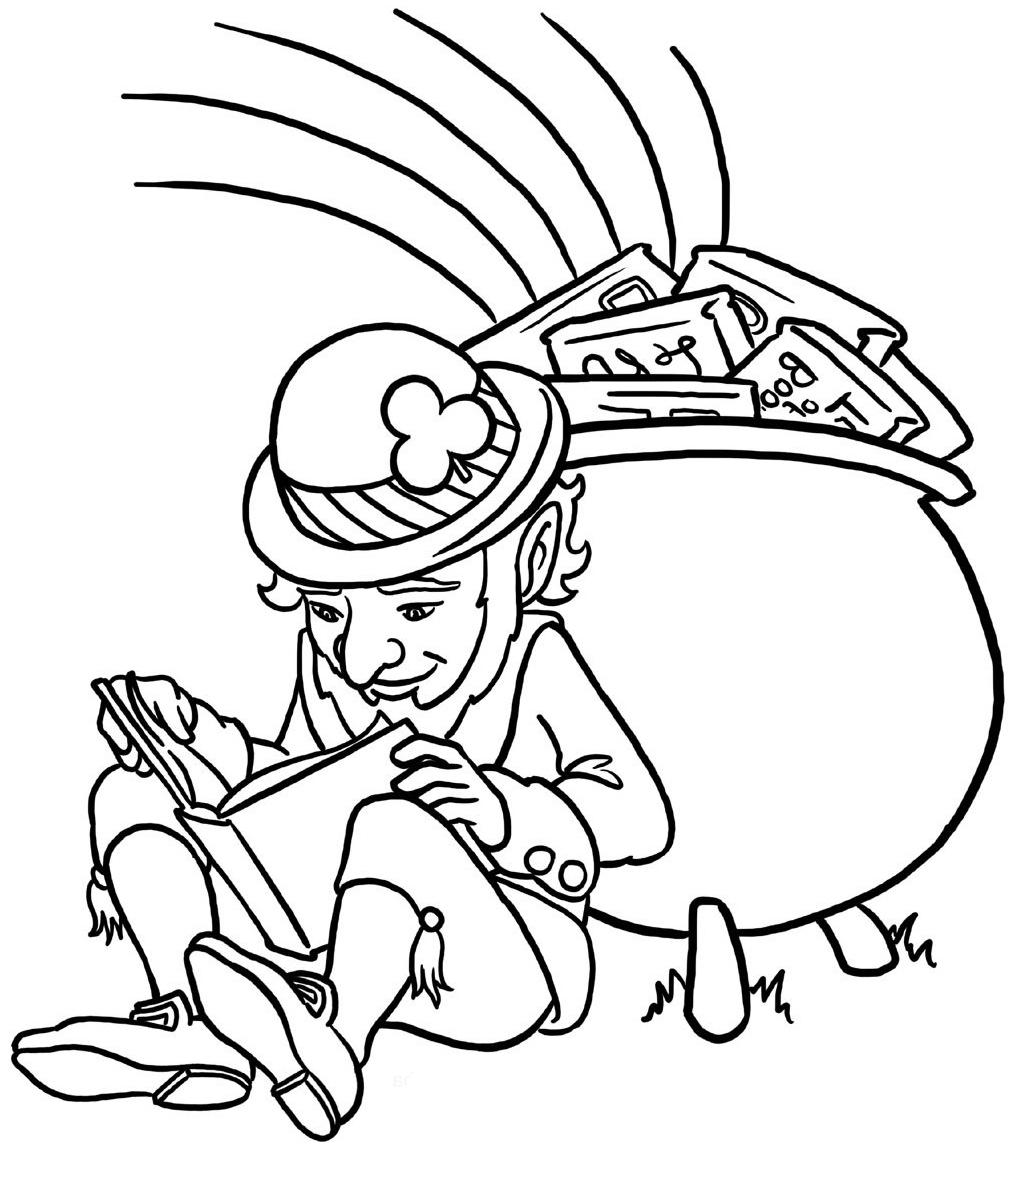 Leprachauns Colouring Pages Page 2